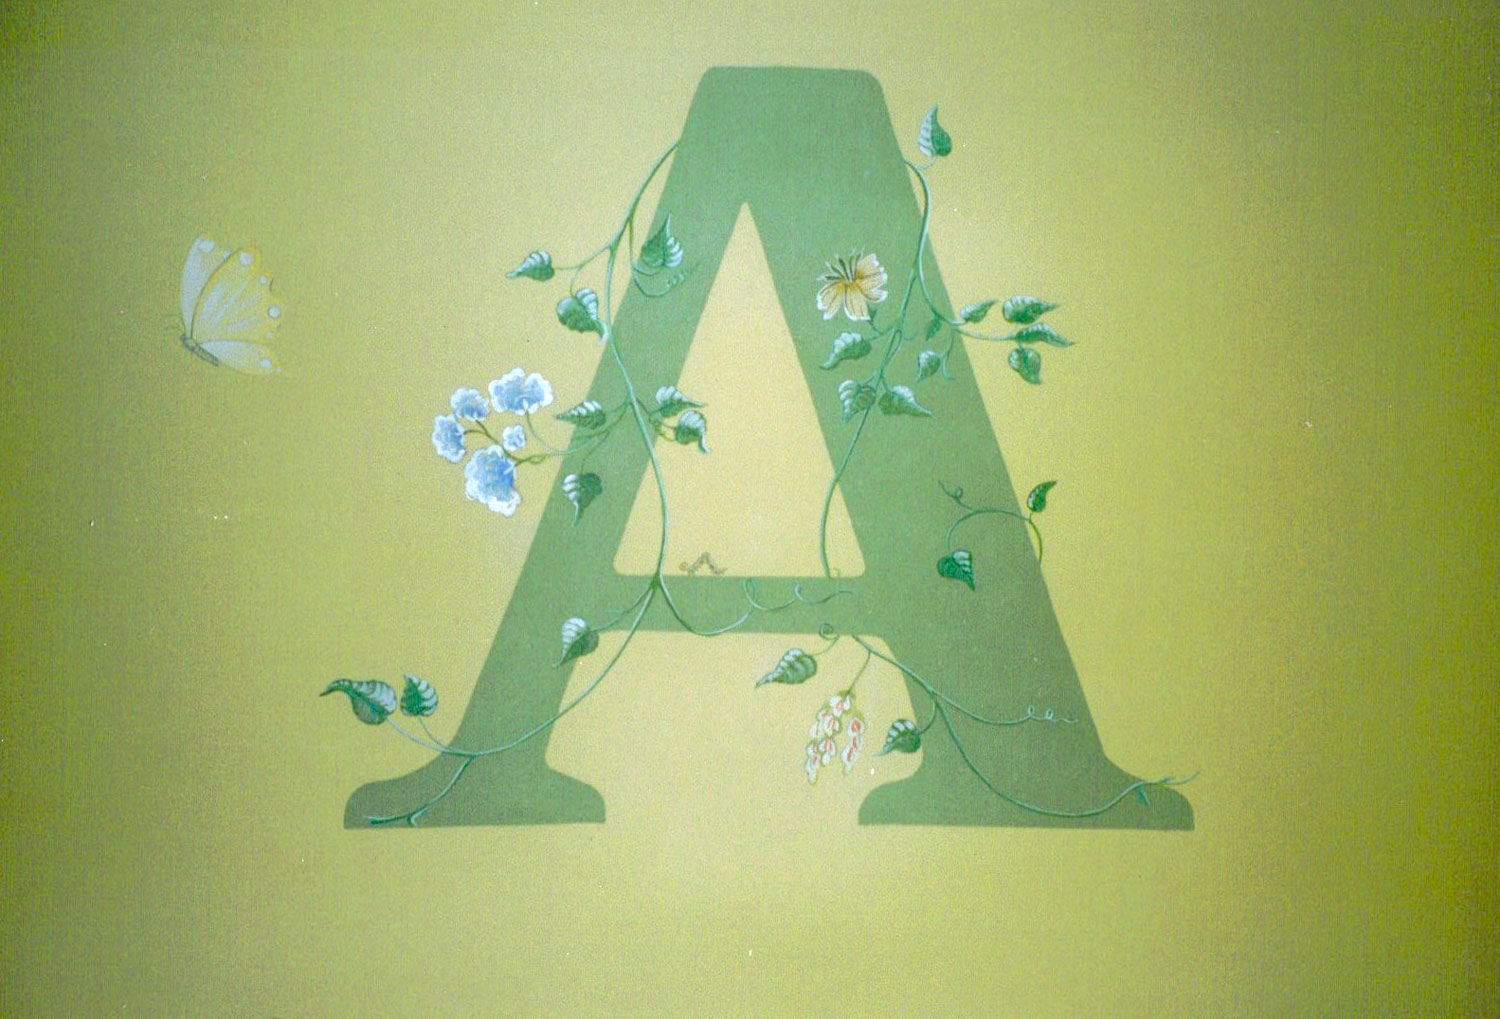 mural-decorative-letter-a.jpg